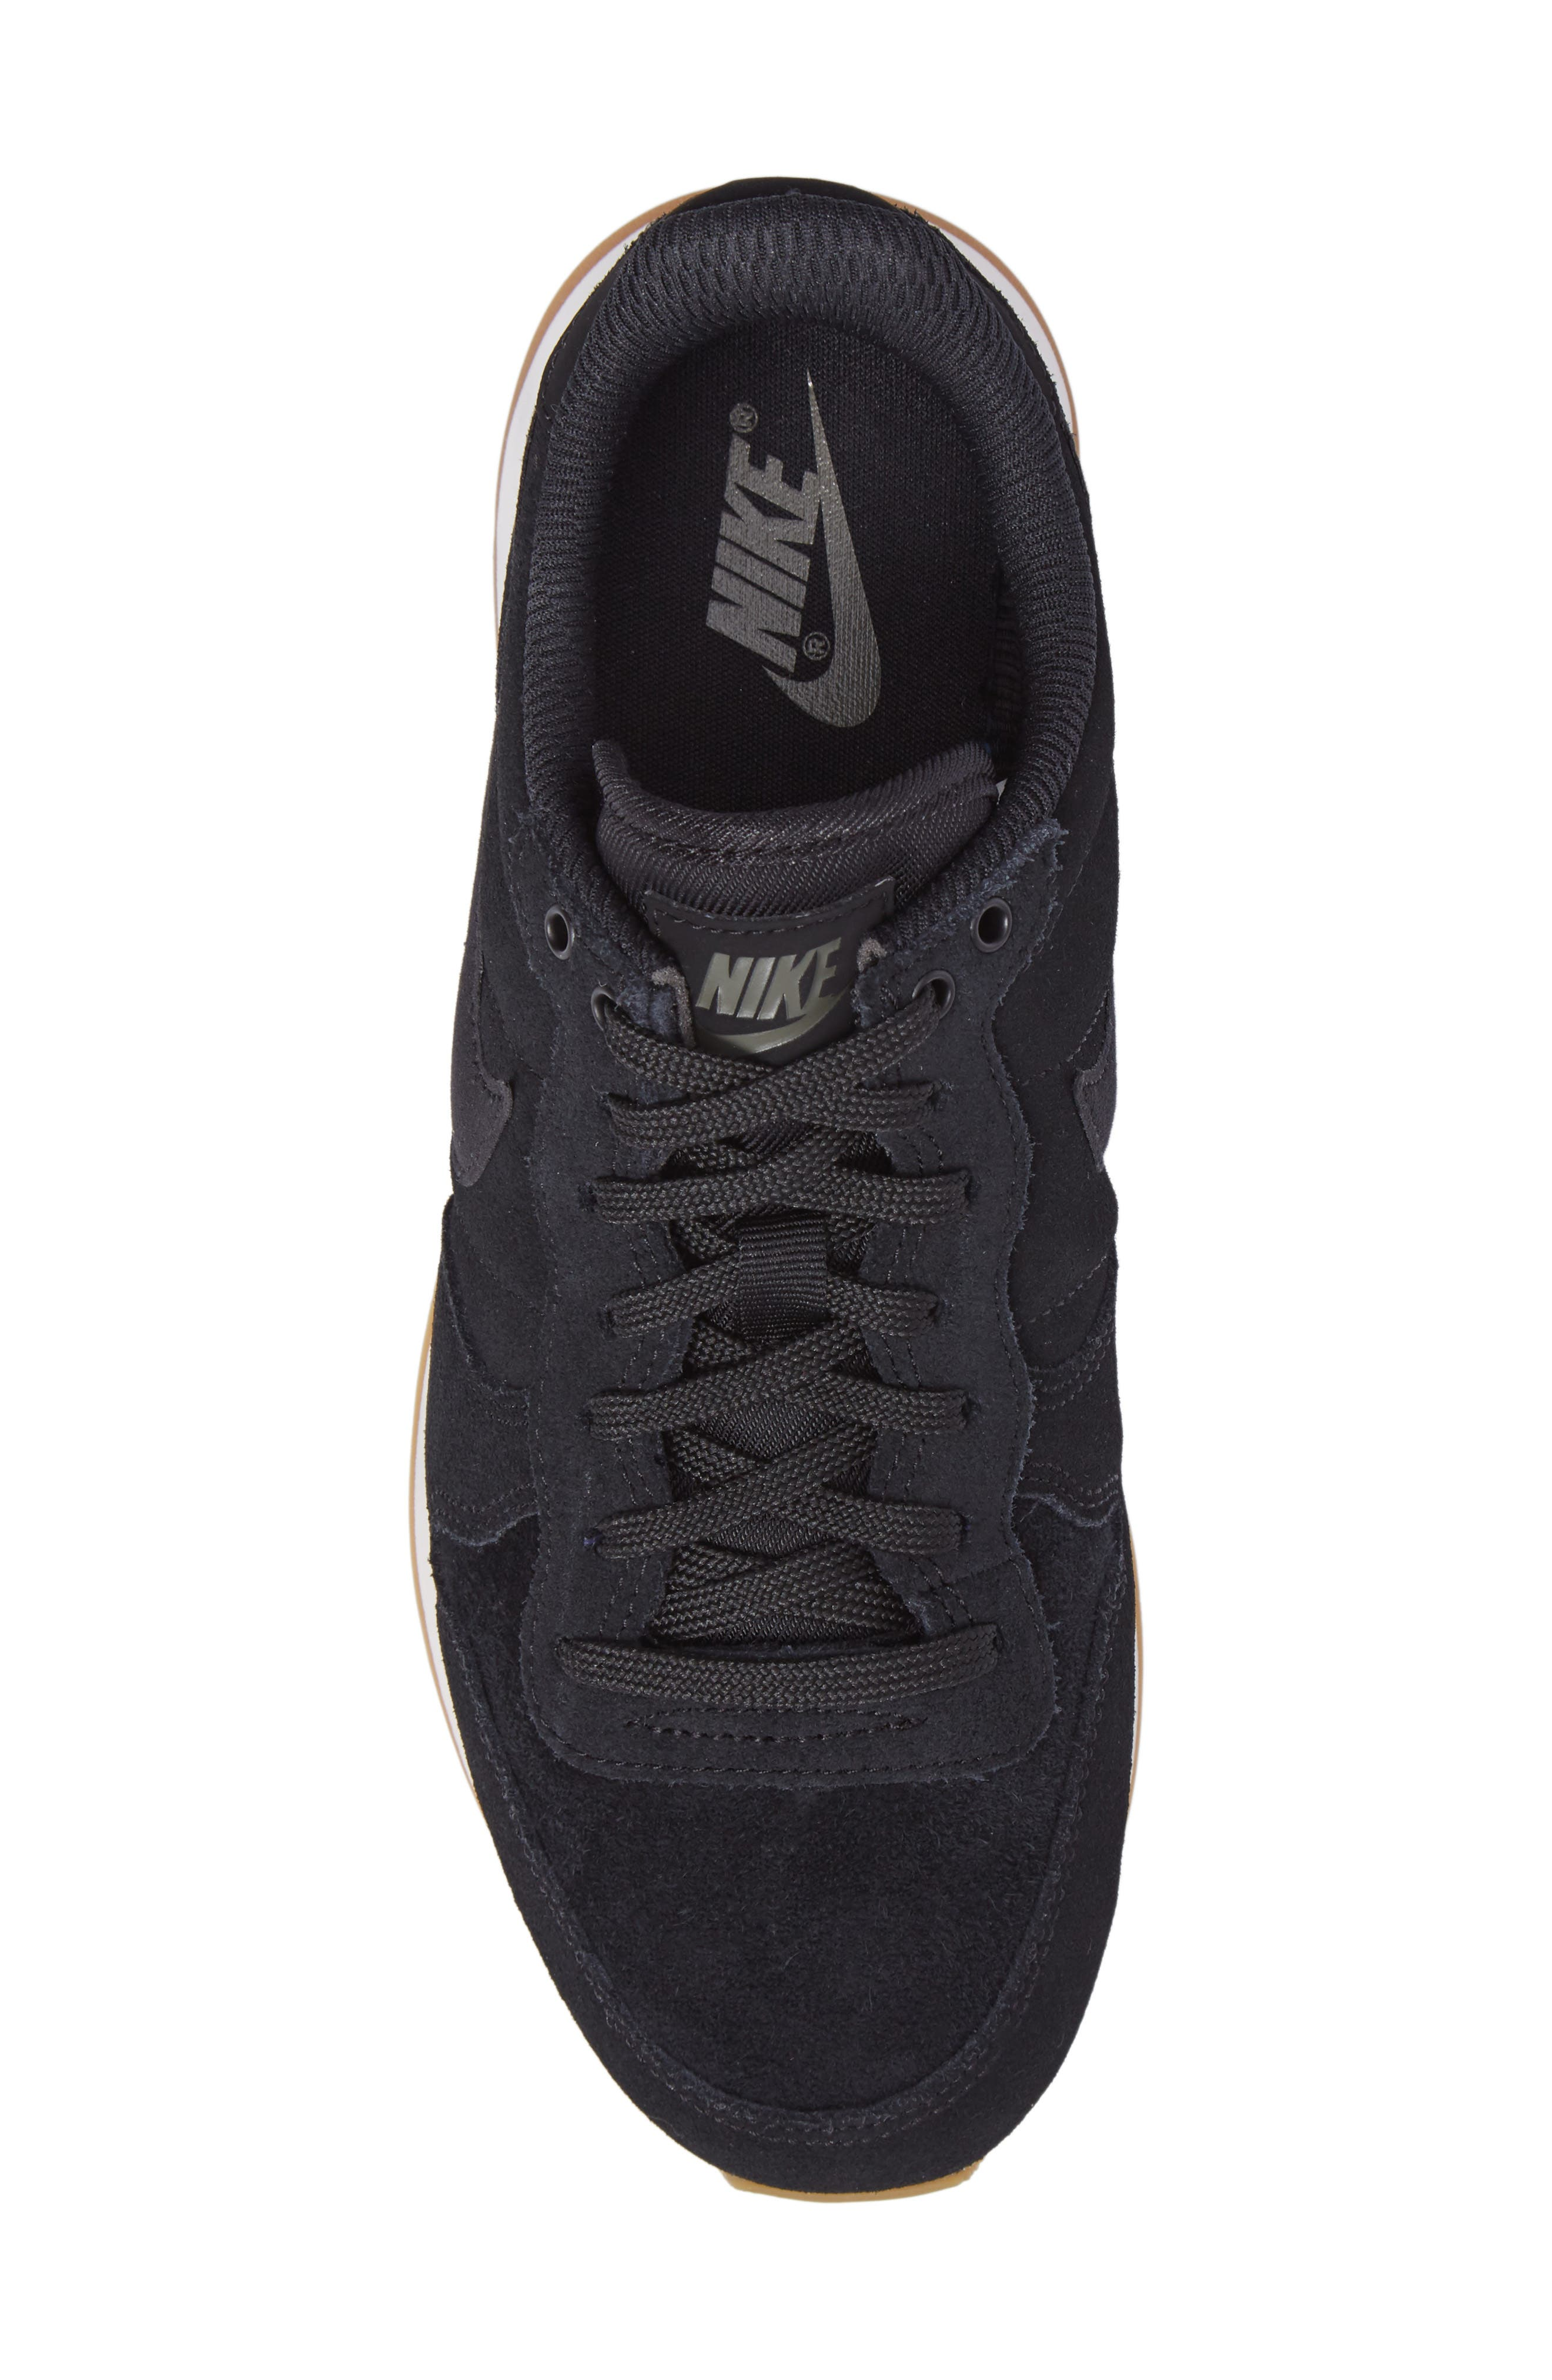 Internationalist SE Sneaker,                             Alternate thumbnail 5, color,                             Black/ Black/ Green/ Brown